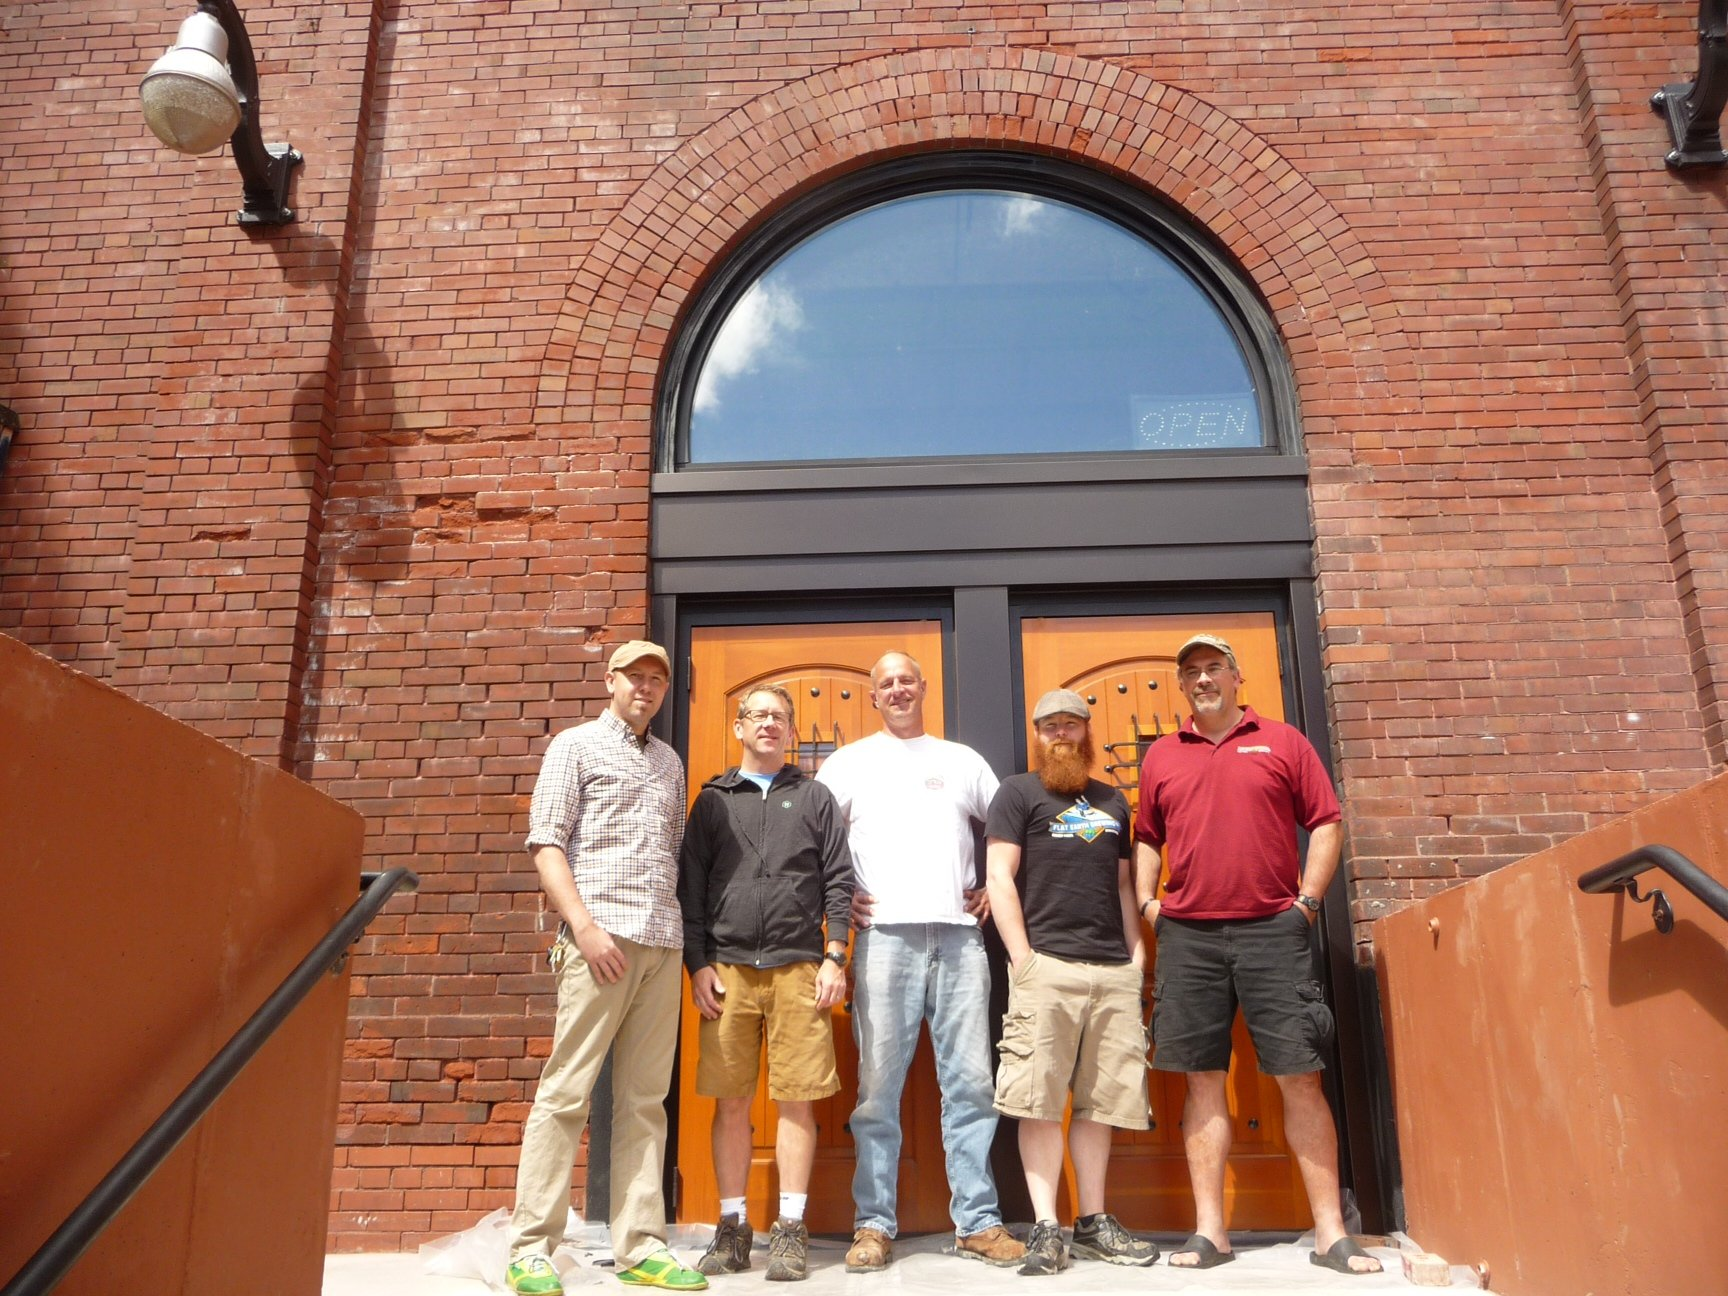 (Photo by Karin DuPaul) Standing in front of the entrance to the Flat Earth Brewing Company are, from left: Lee Egbert and Bob McManus, owners of 11 Wells Distillery; John Warner, owner of Flat Earth; Bob Roepke, Flat Earth Brewer Master; and Franco Claseman, Flat Earth Operations Manager.